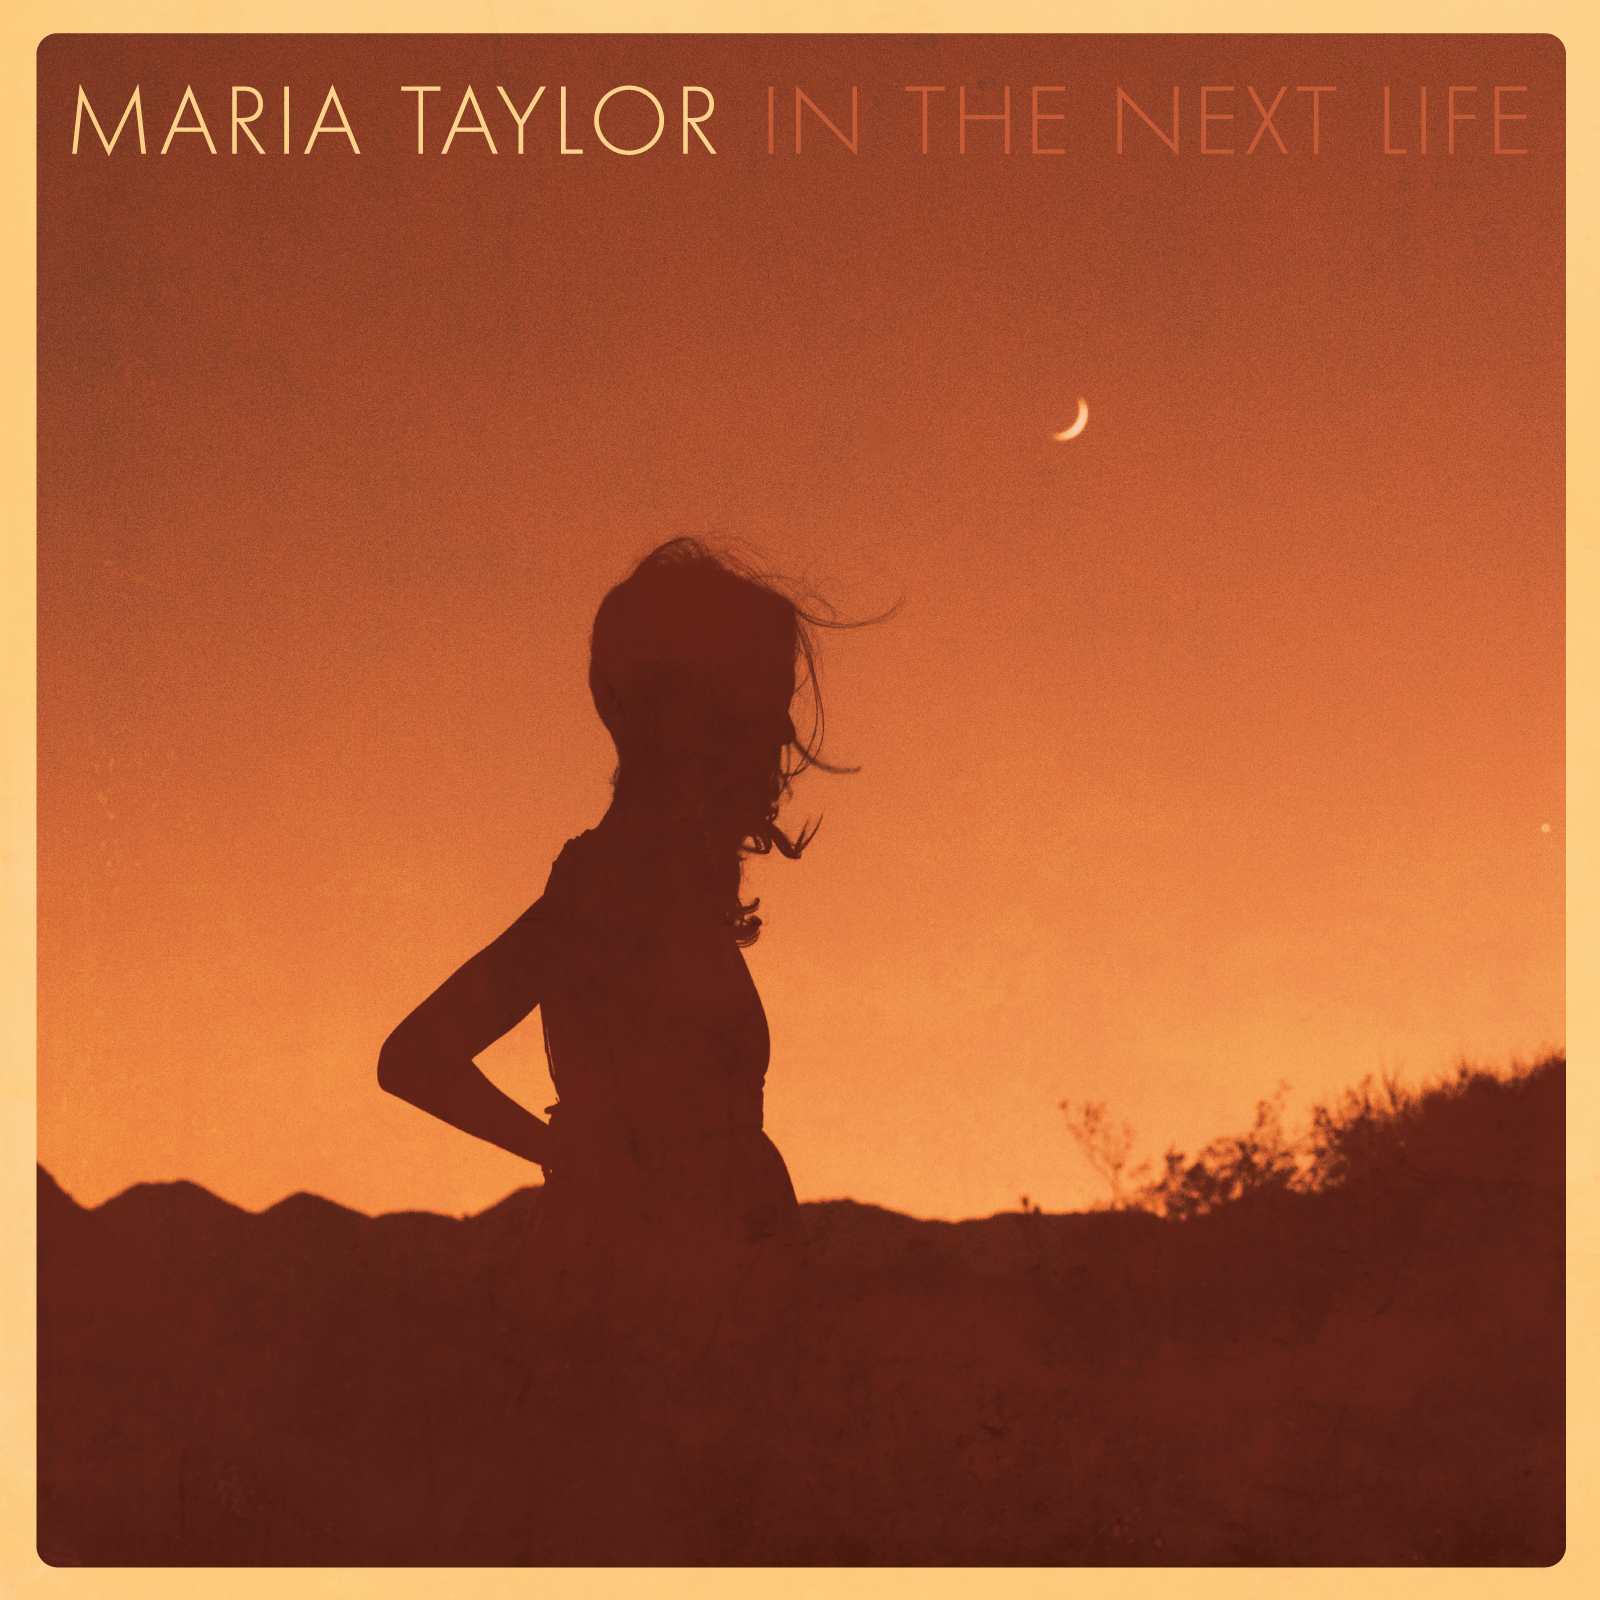 Maria Taylor   In the Next Life  (2016, Flower Moon Records)  Mix/lap steel